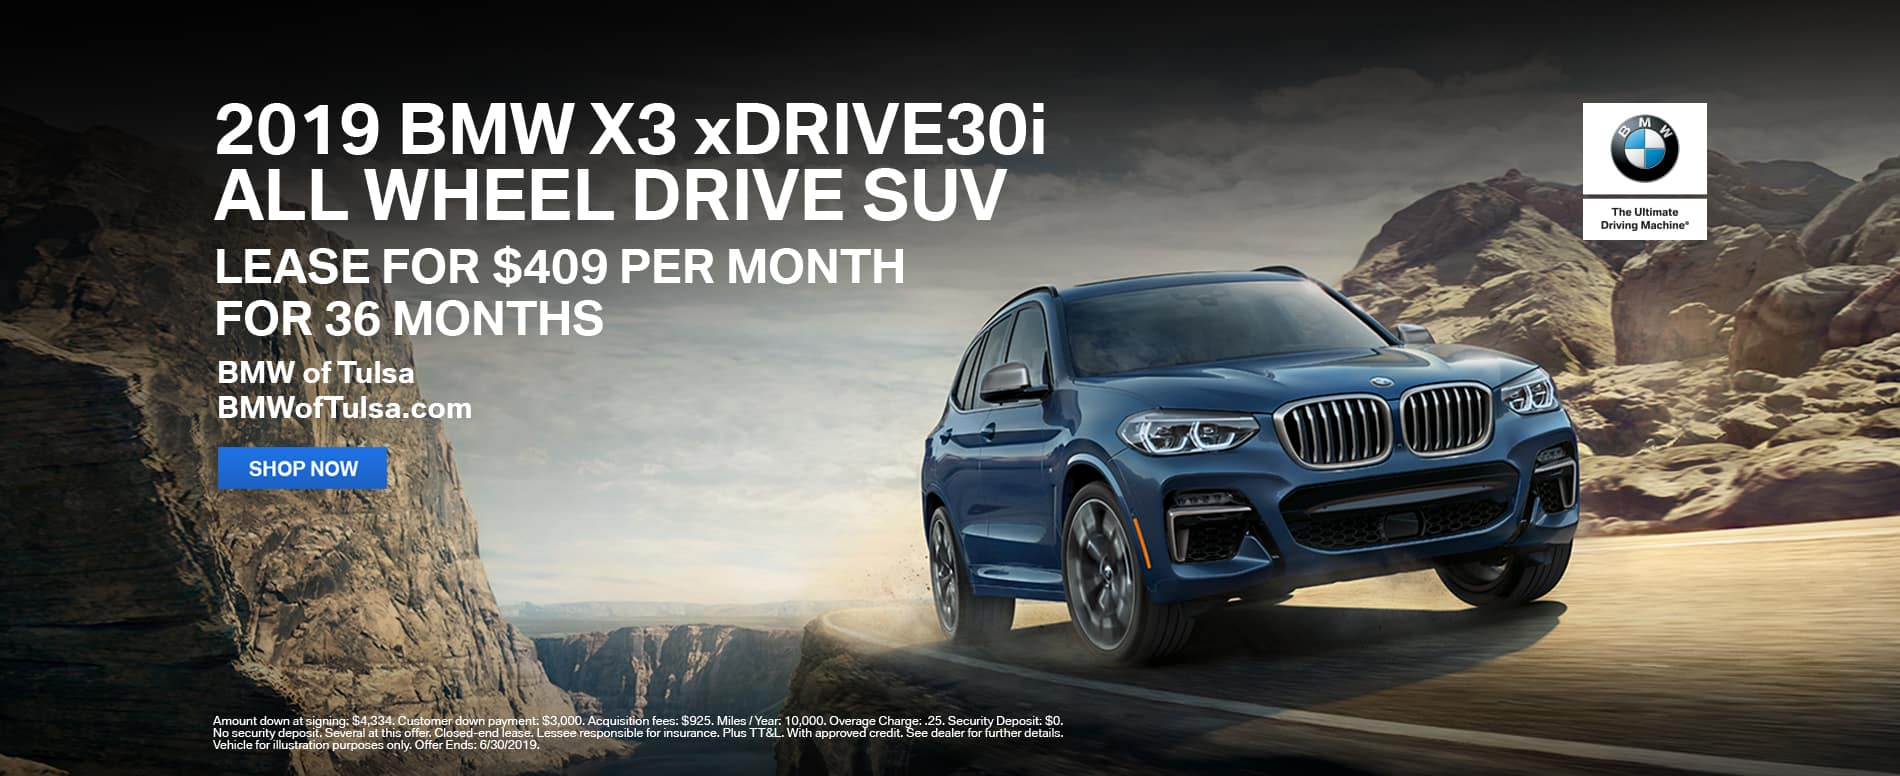 lease-2019-bmw-x3-xdrive-30i-awd-suv-tulsa